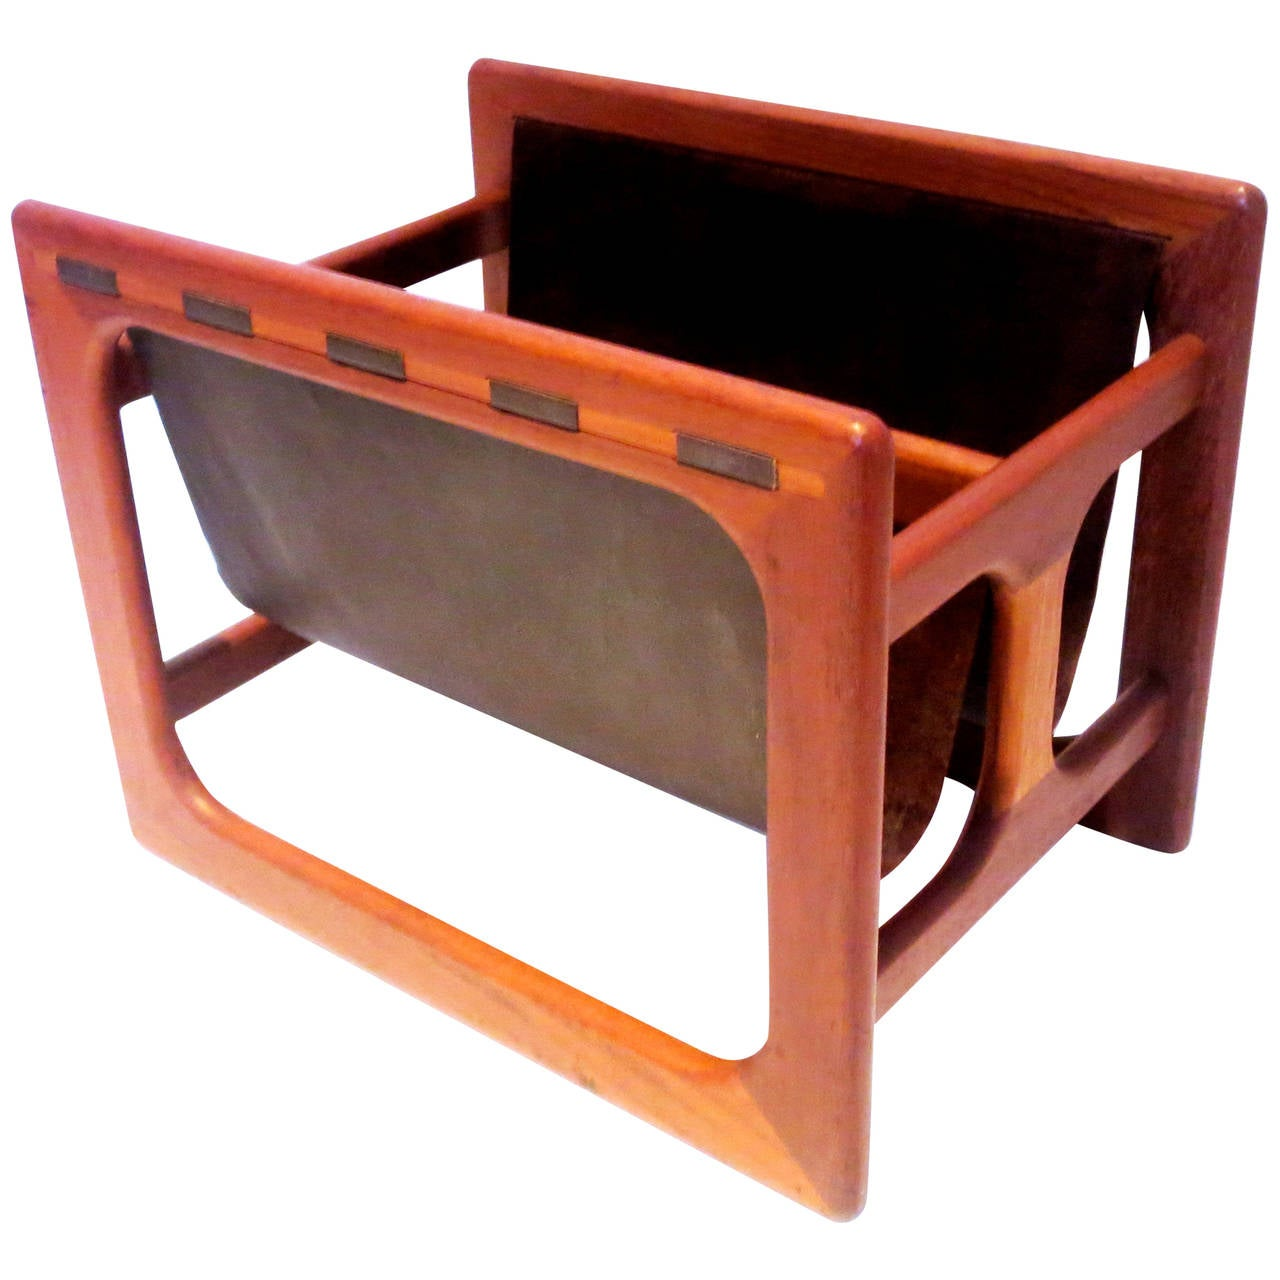 danish modern rare leather and teak sculpted double magazine rack . danish modern rare leather and teak sculpted double magazine rack